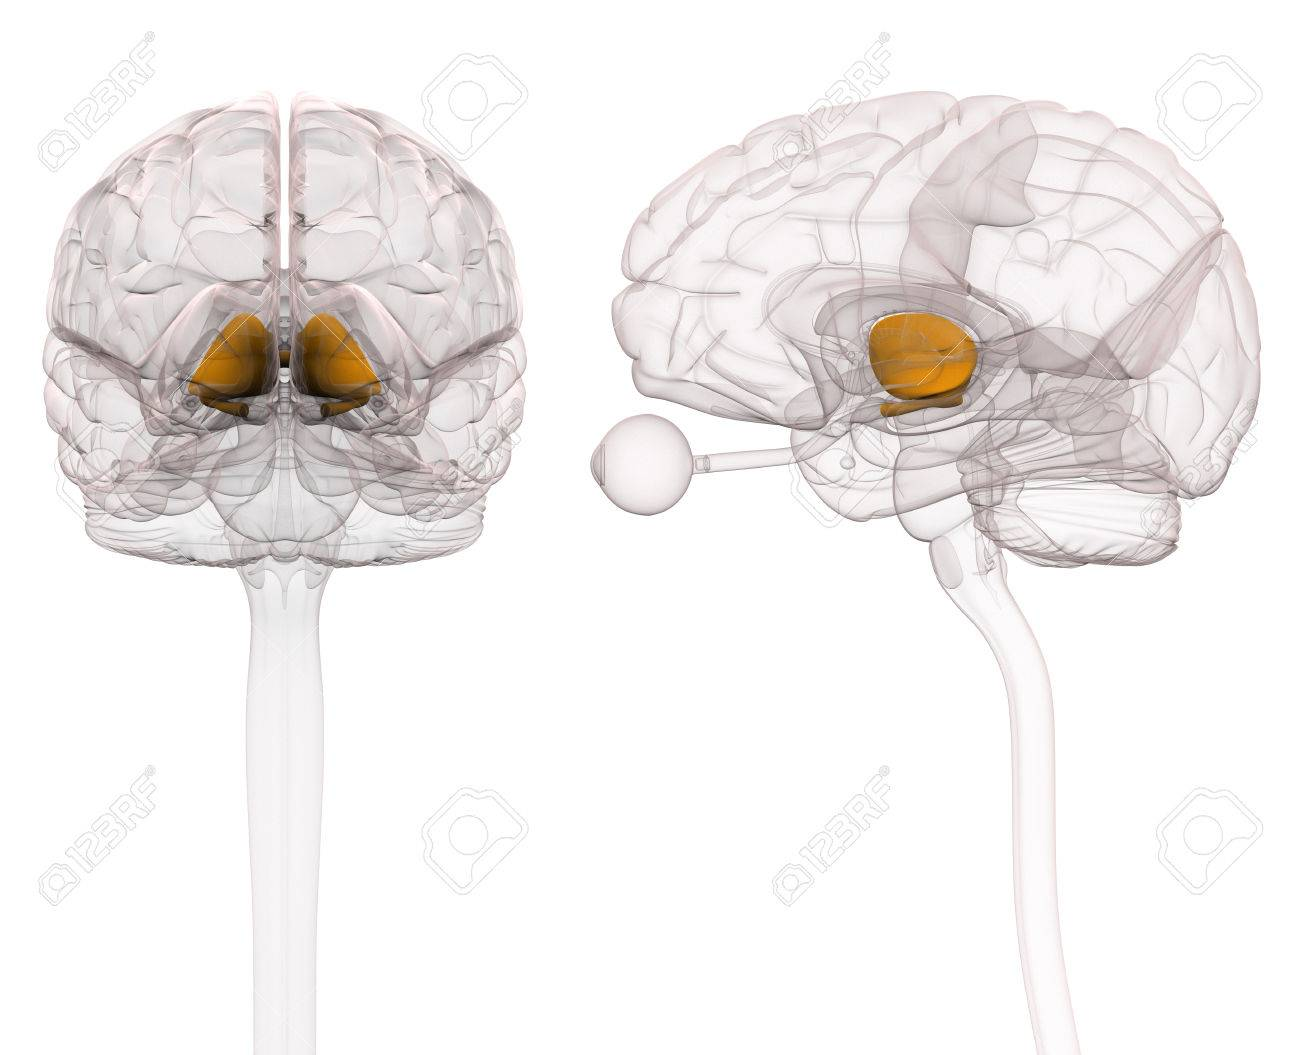 Thalamus Brain Anatomy Stock Photo, Picture And Royalty Free Image ...